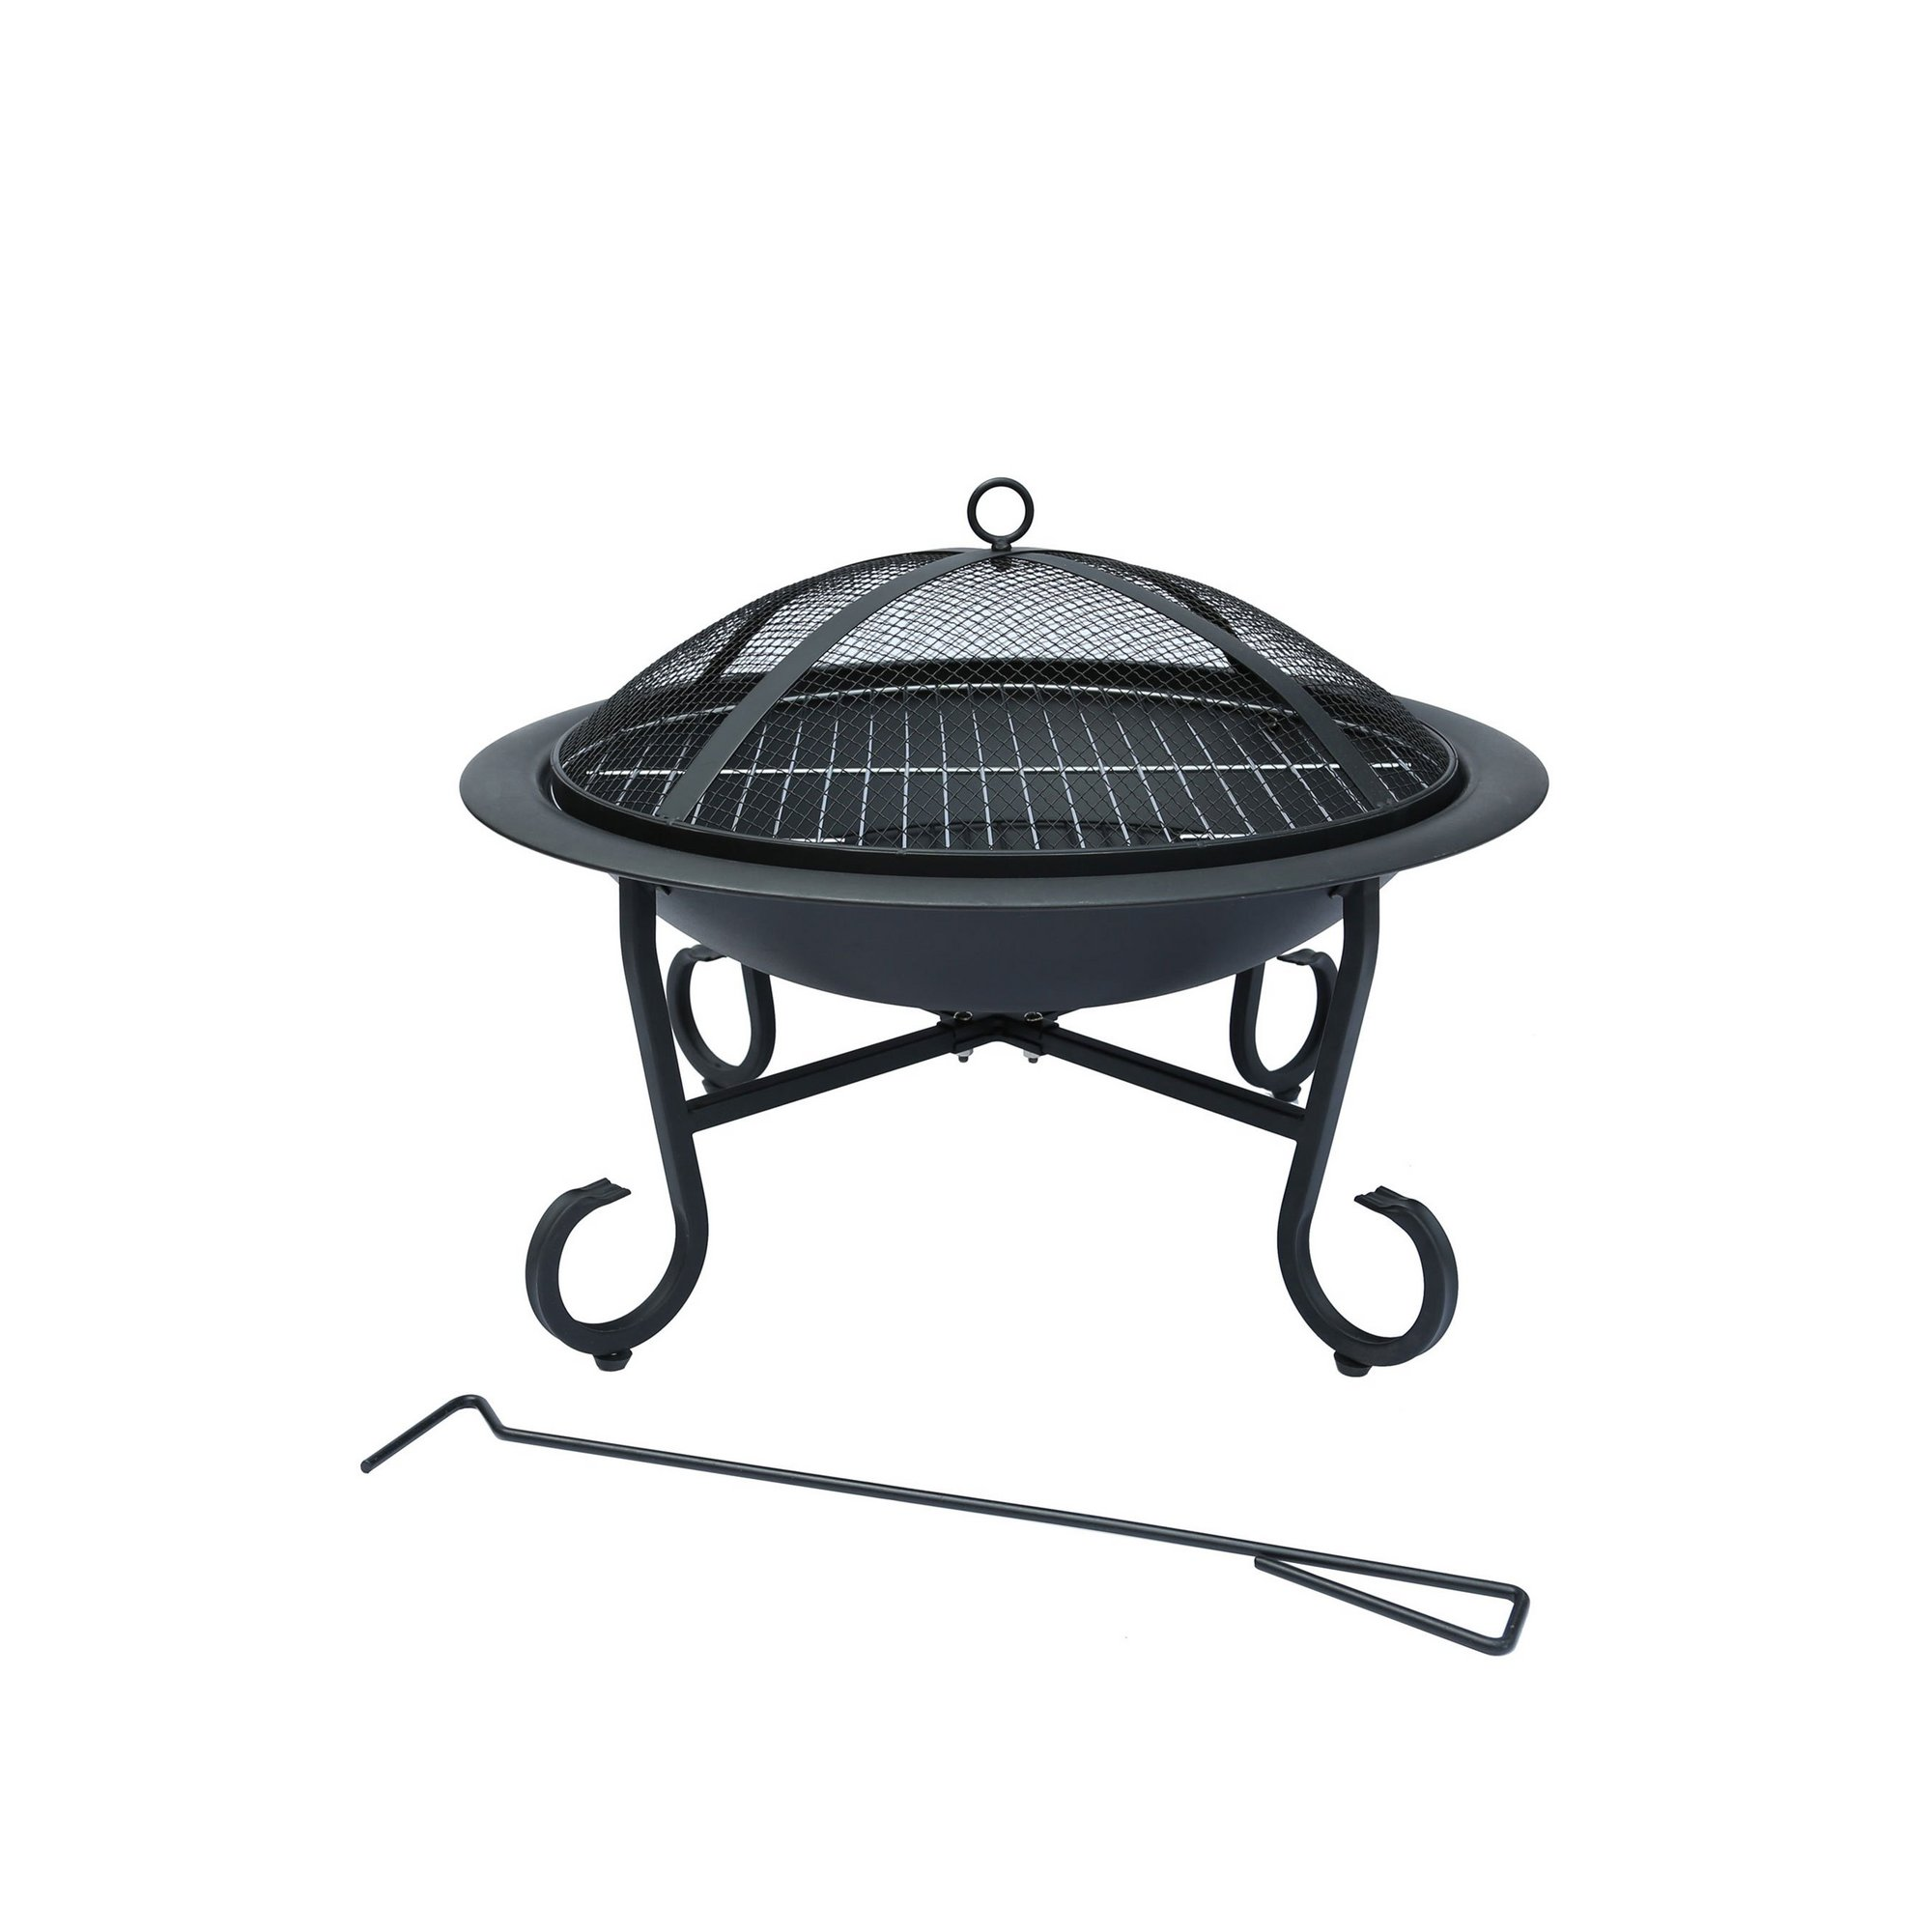 Image of Charles Bentley Large Round Metal Fire Pit With Mesh Cover